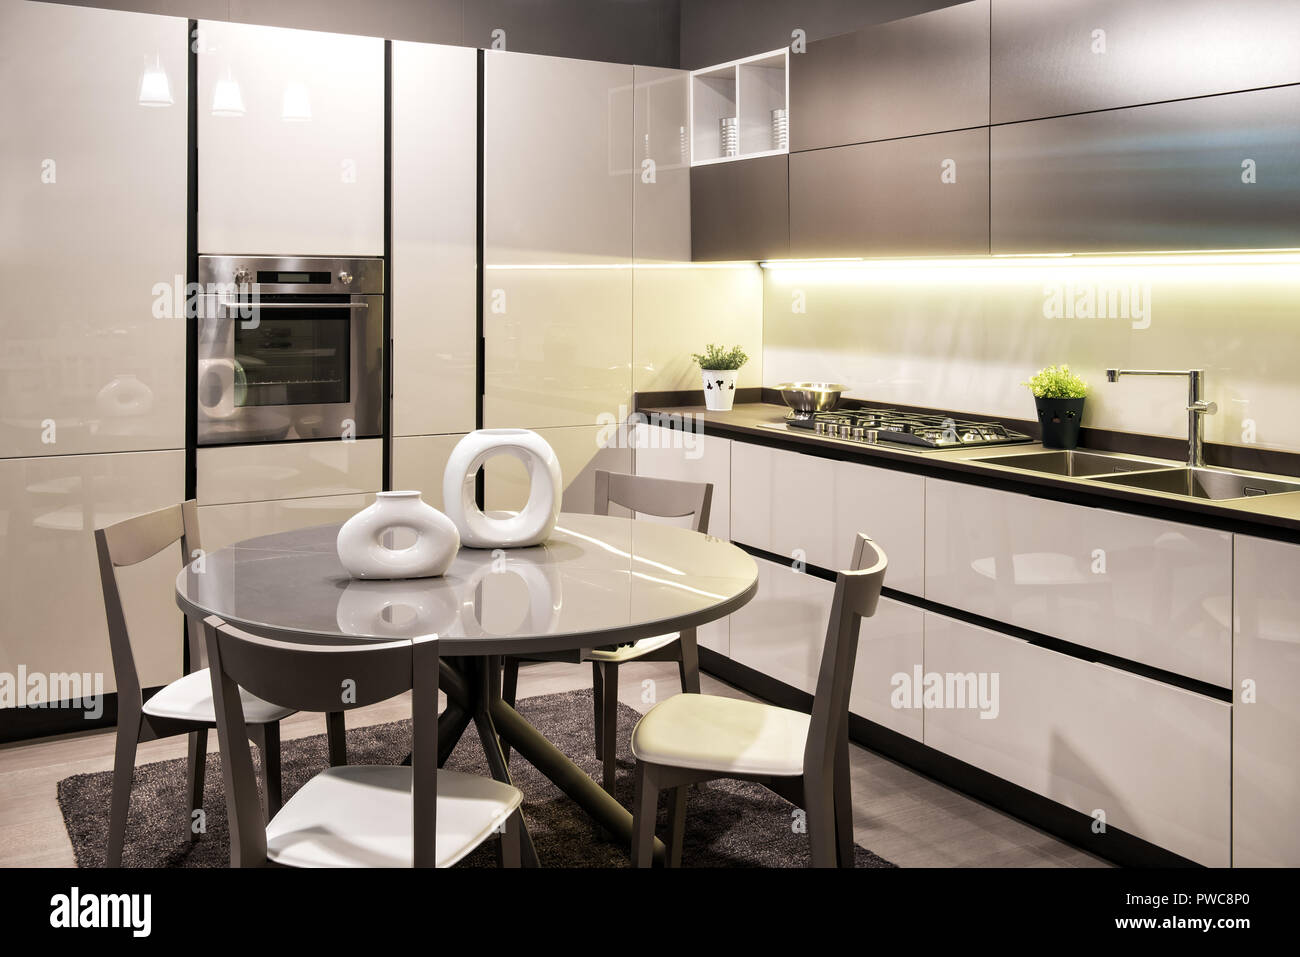 Modern built in kitchen with black and white decor and fitted appliances with circular dining table and chairs set with modern sculptural ceramics - Stock Image